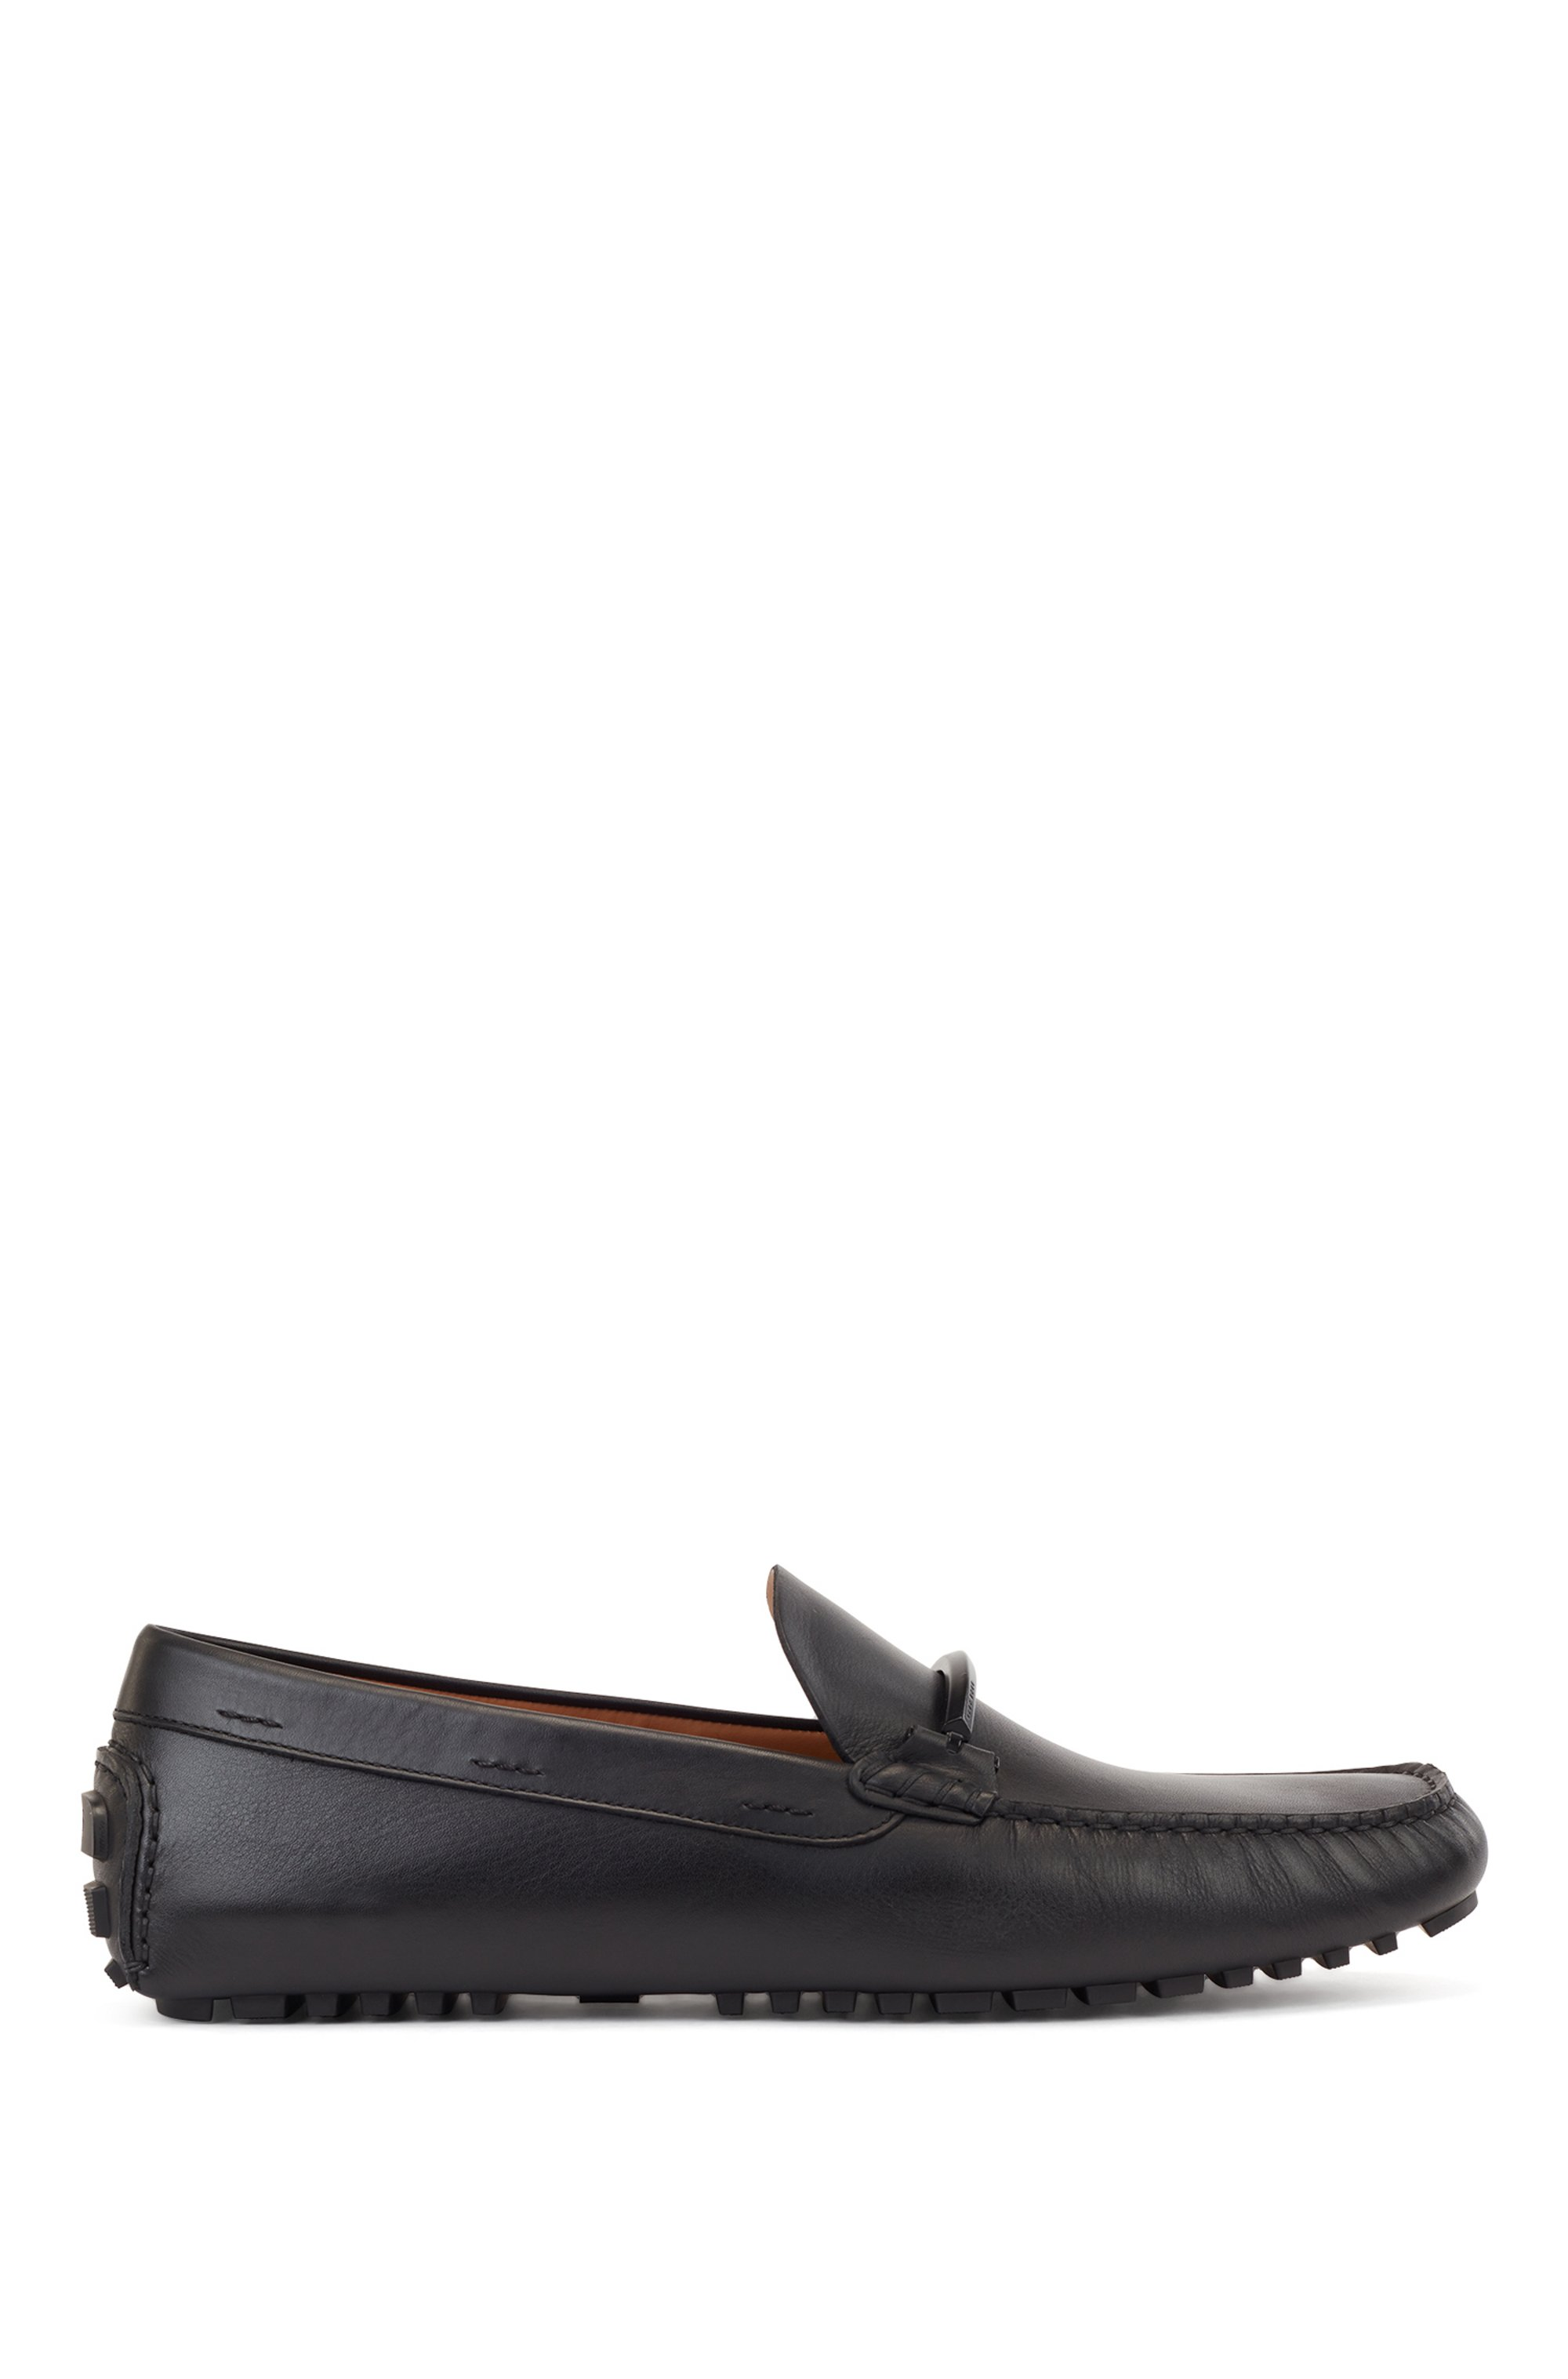 Driver-sole moccasins in leather with coloured-metal hardware, Black